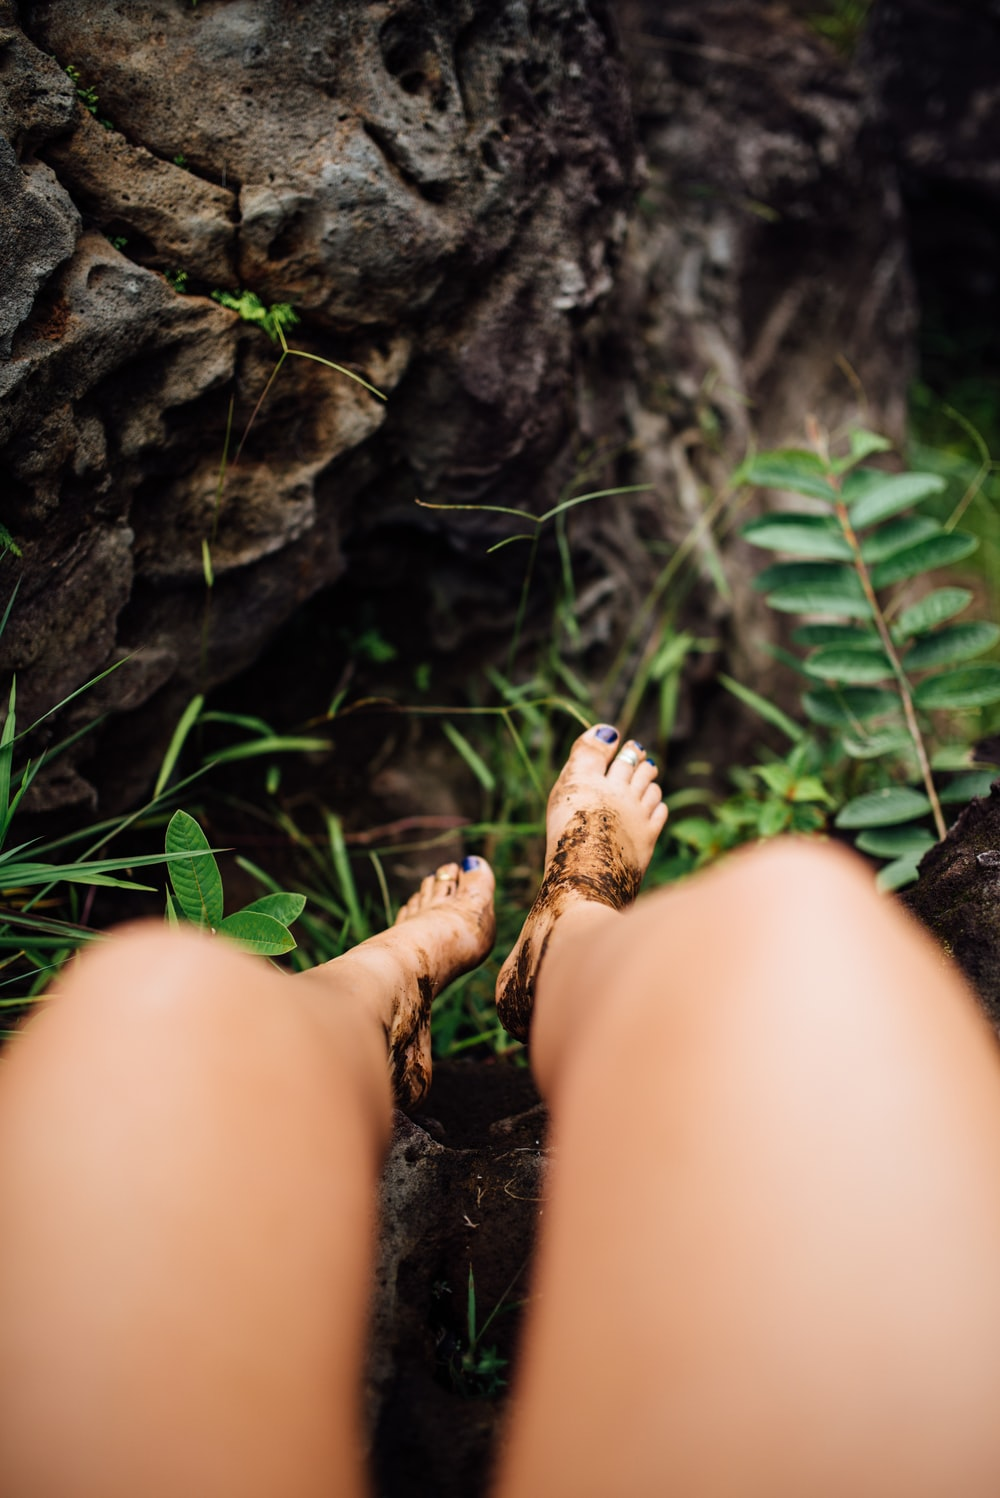 photo of person legs